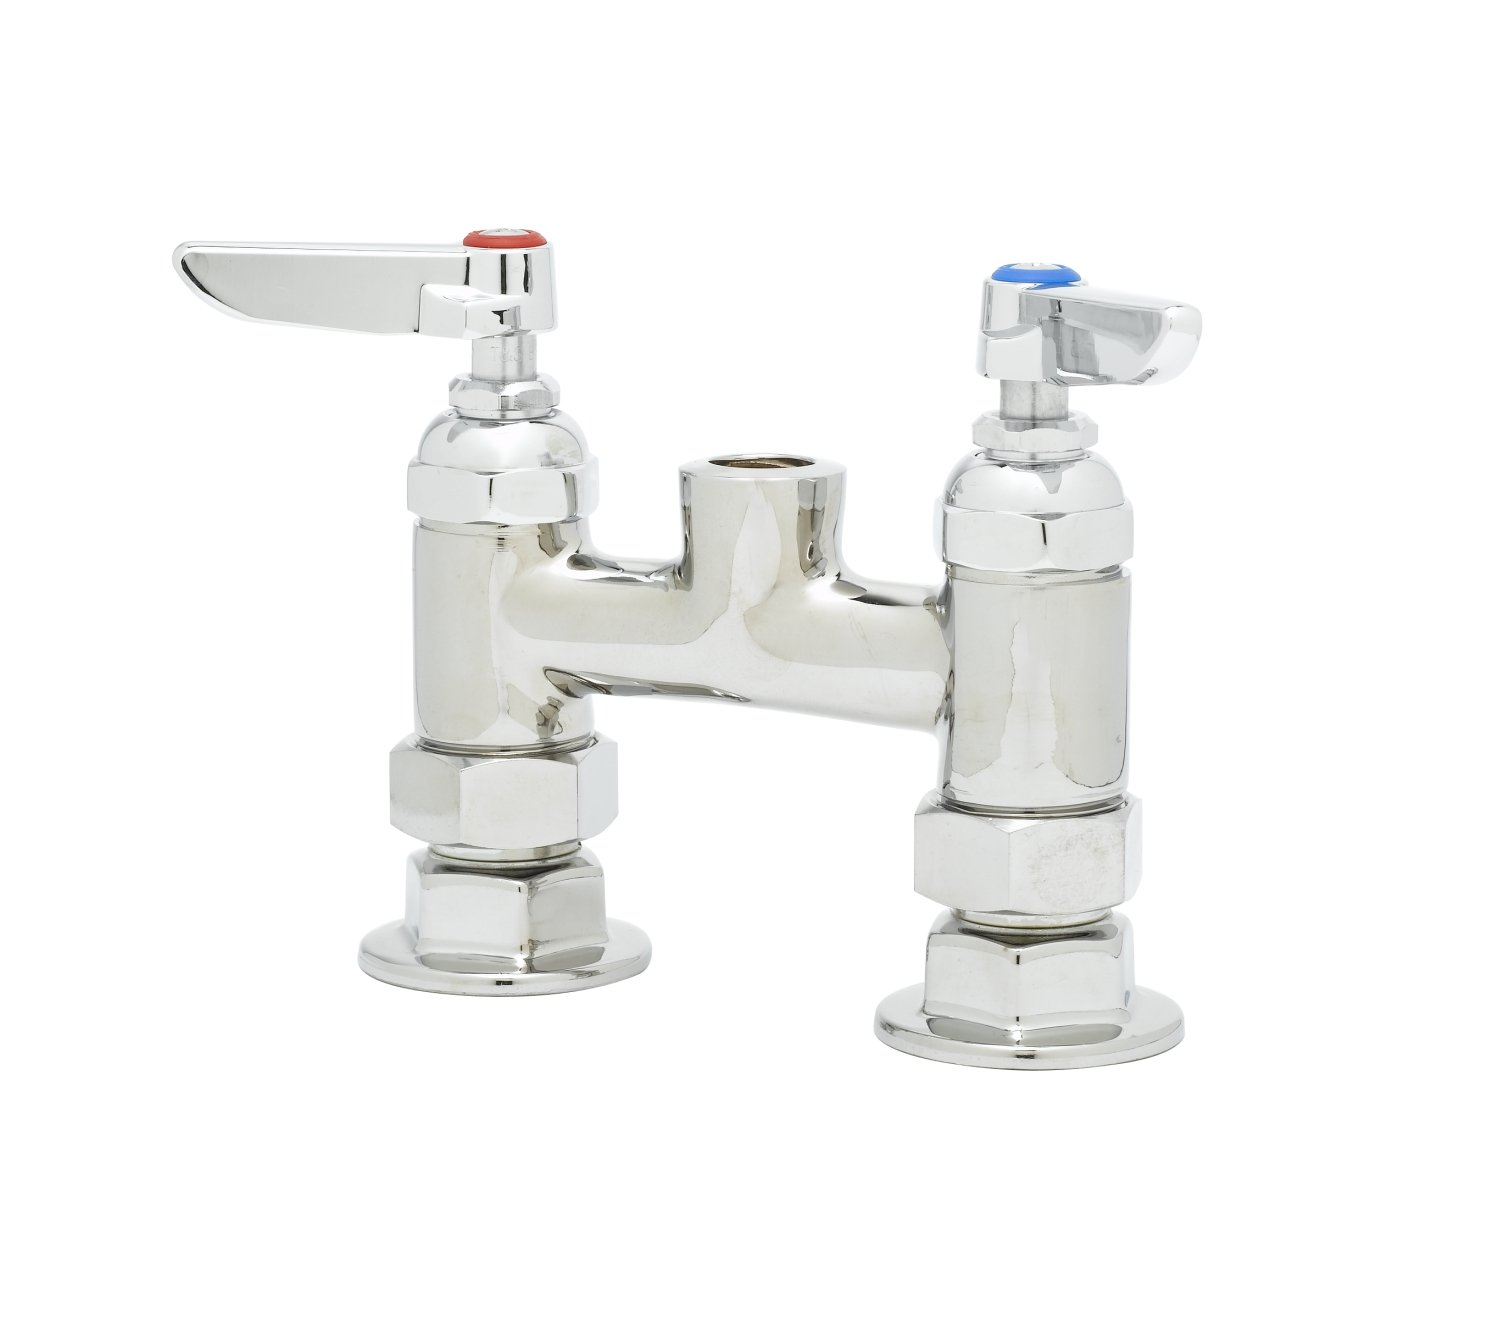 T&S Brass B-0326-LN Deck Mount Double Pantry Rigid Base Faucet with Less Nozzle by T&S Brass